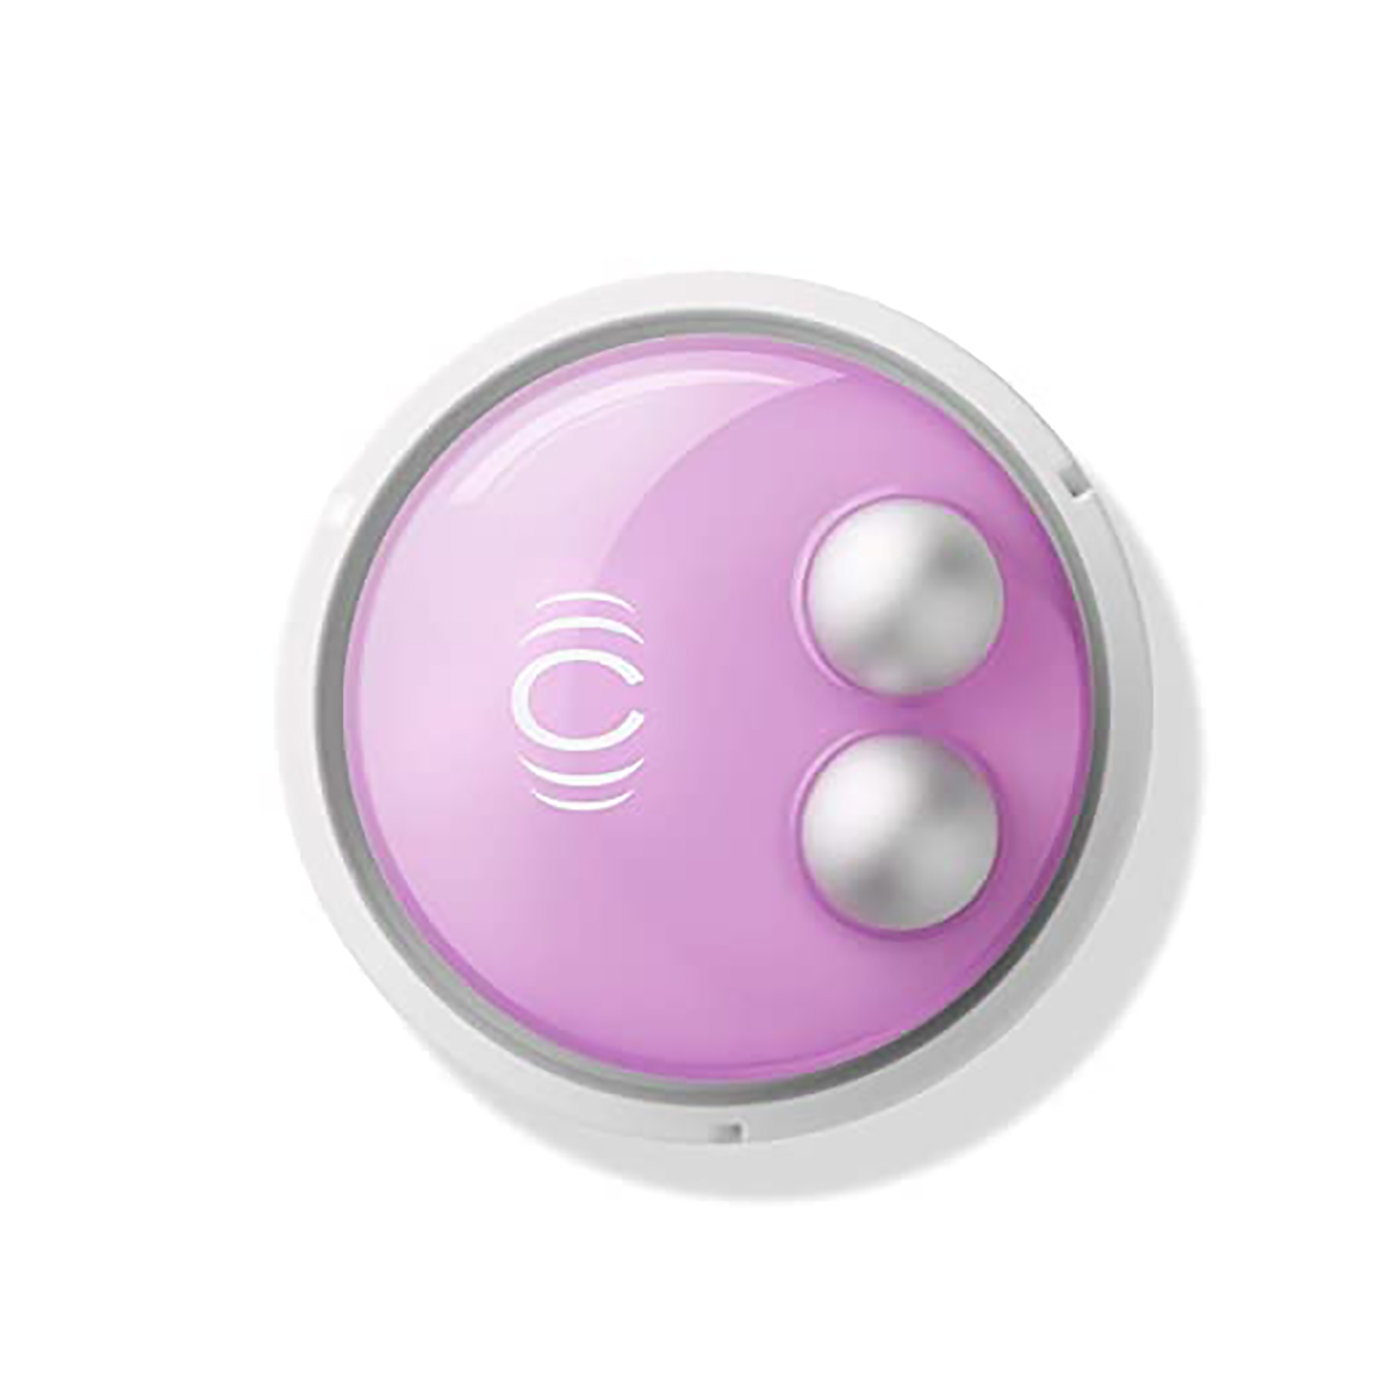 clarisonic sale awakening eye